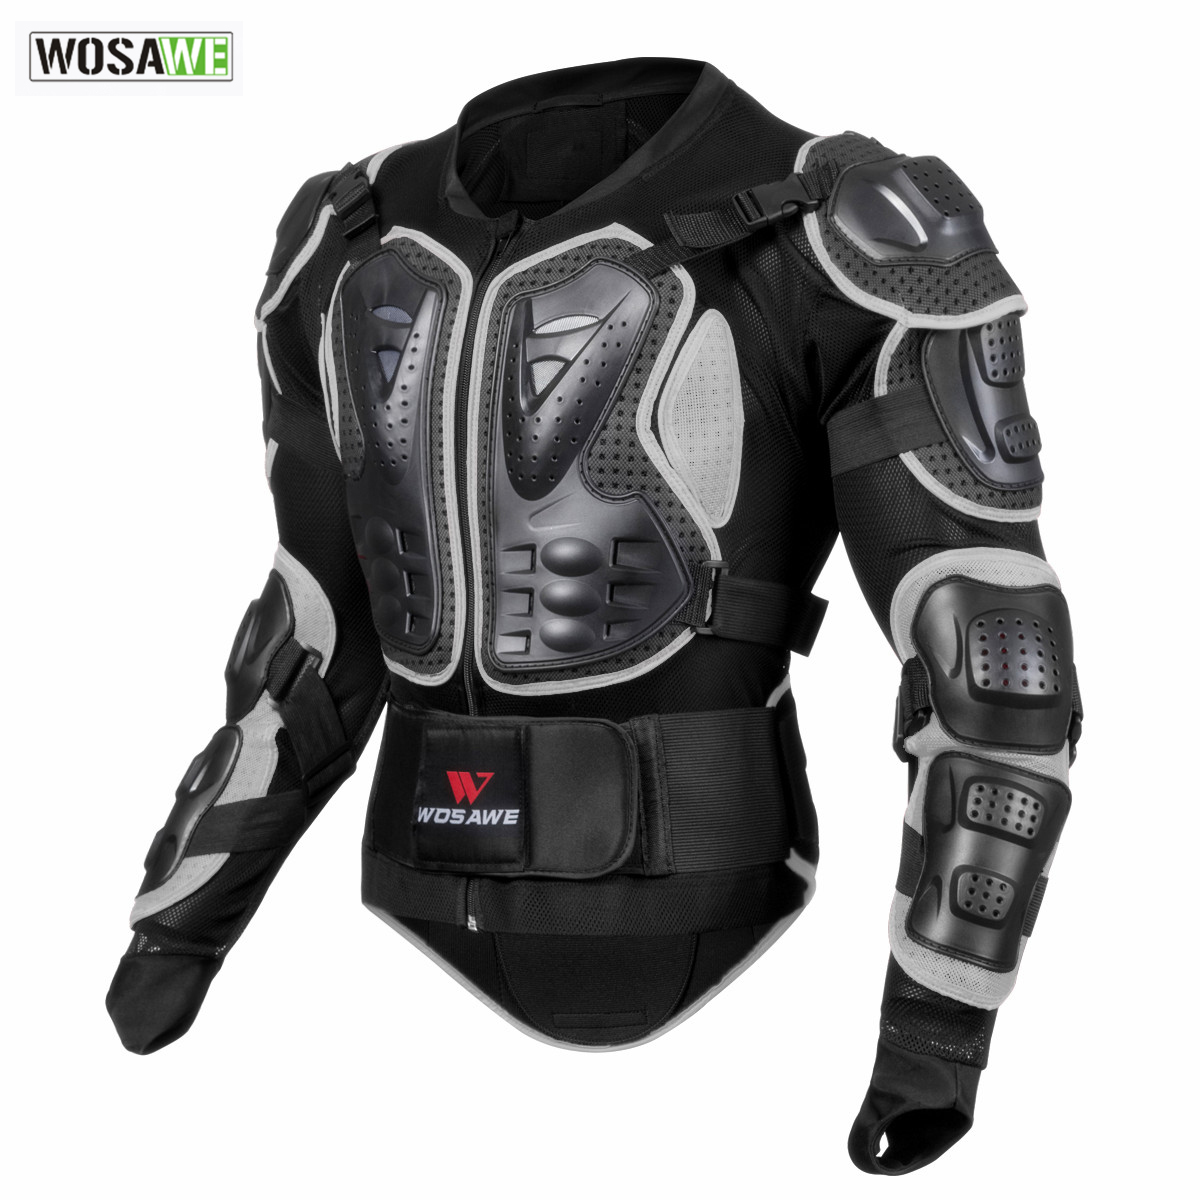 WOSAWE Moto armure veste Protection du corps Moto tortue course Moto Cross Back Support bras protecteur